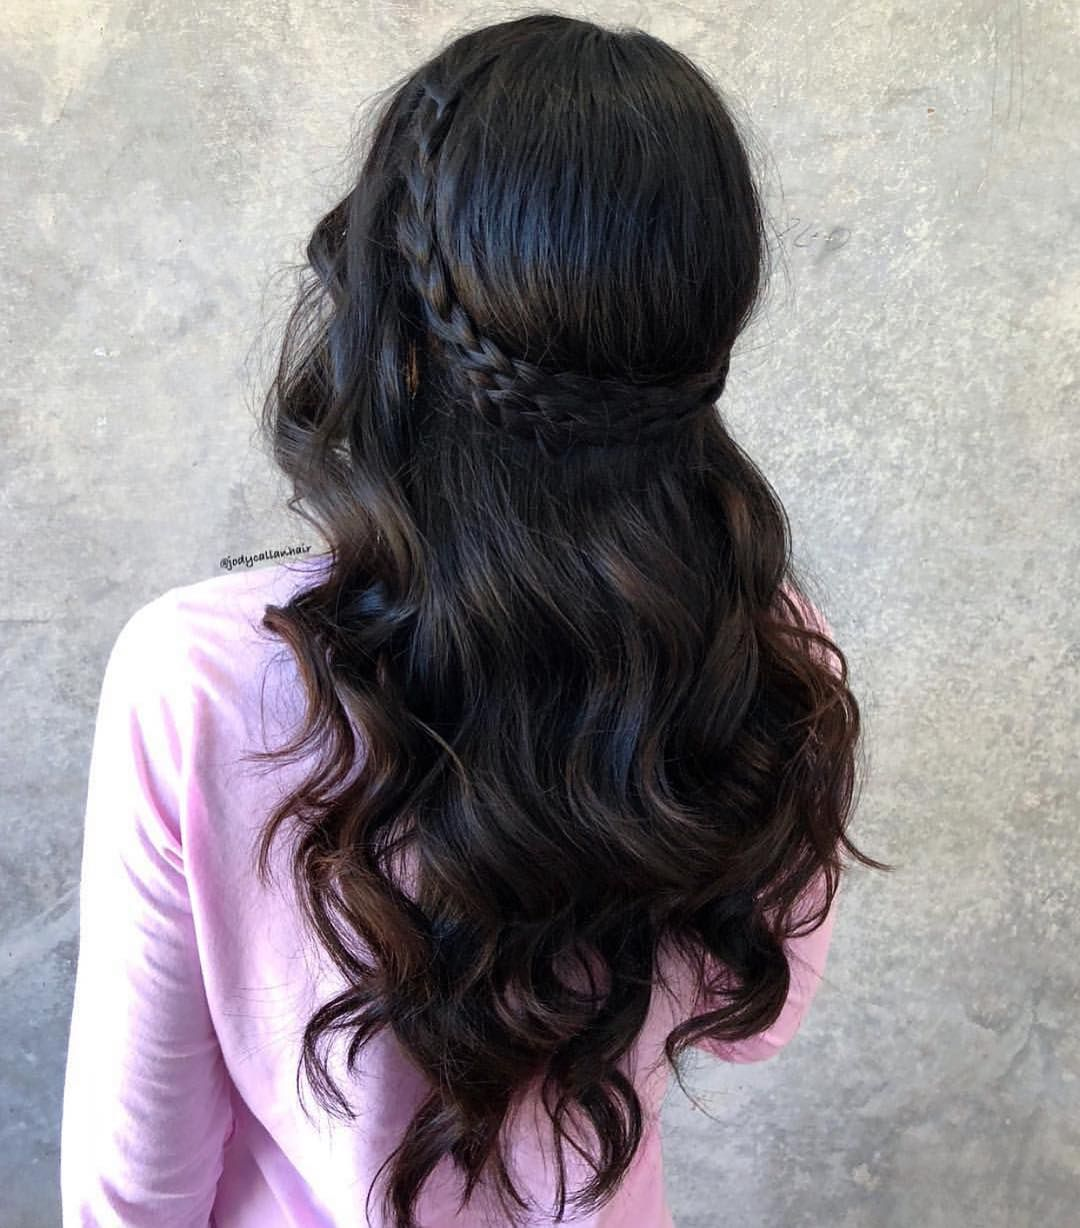 Instabraid On Instagram Many Of You Have Been Asking For Braids On Dark Hair So Here S A Beautiful Elegant Wedding Hair Headband Hairstyles Long Hair Styles